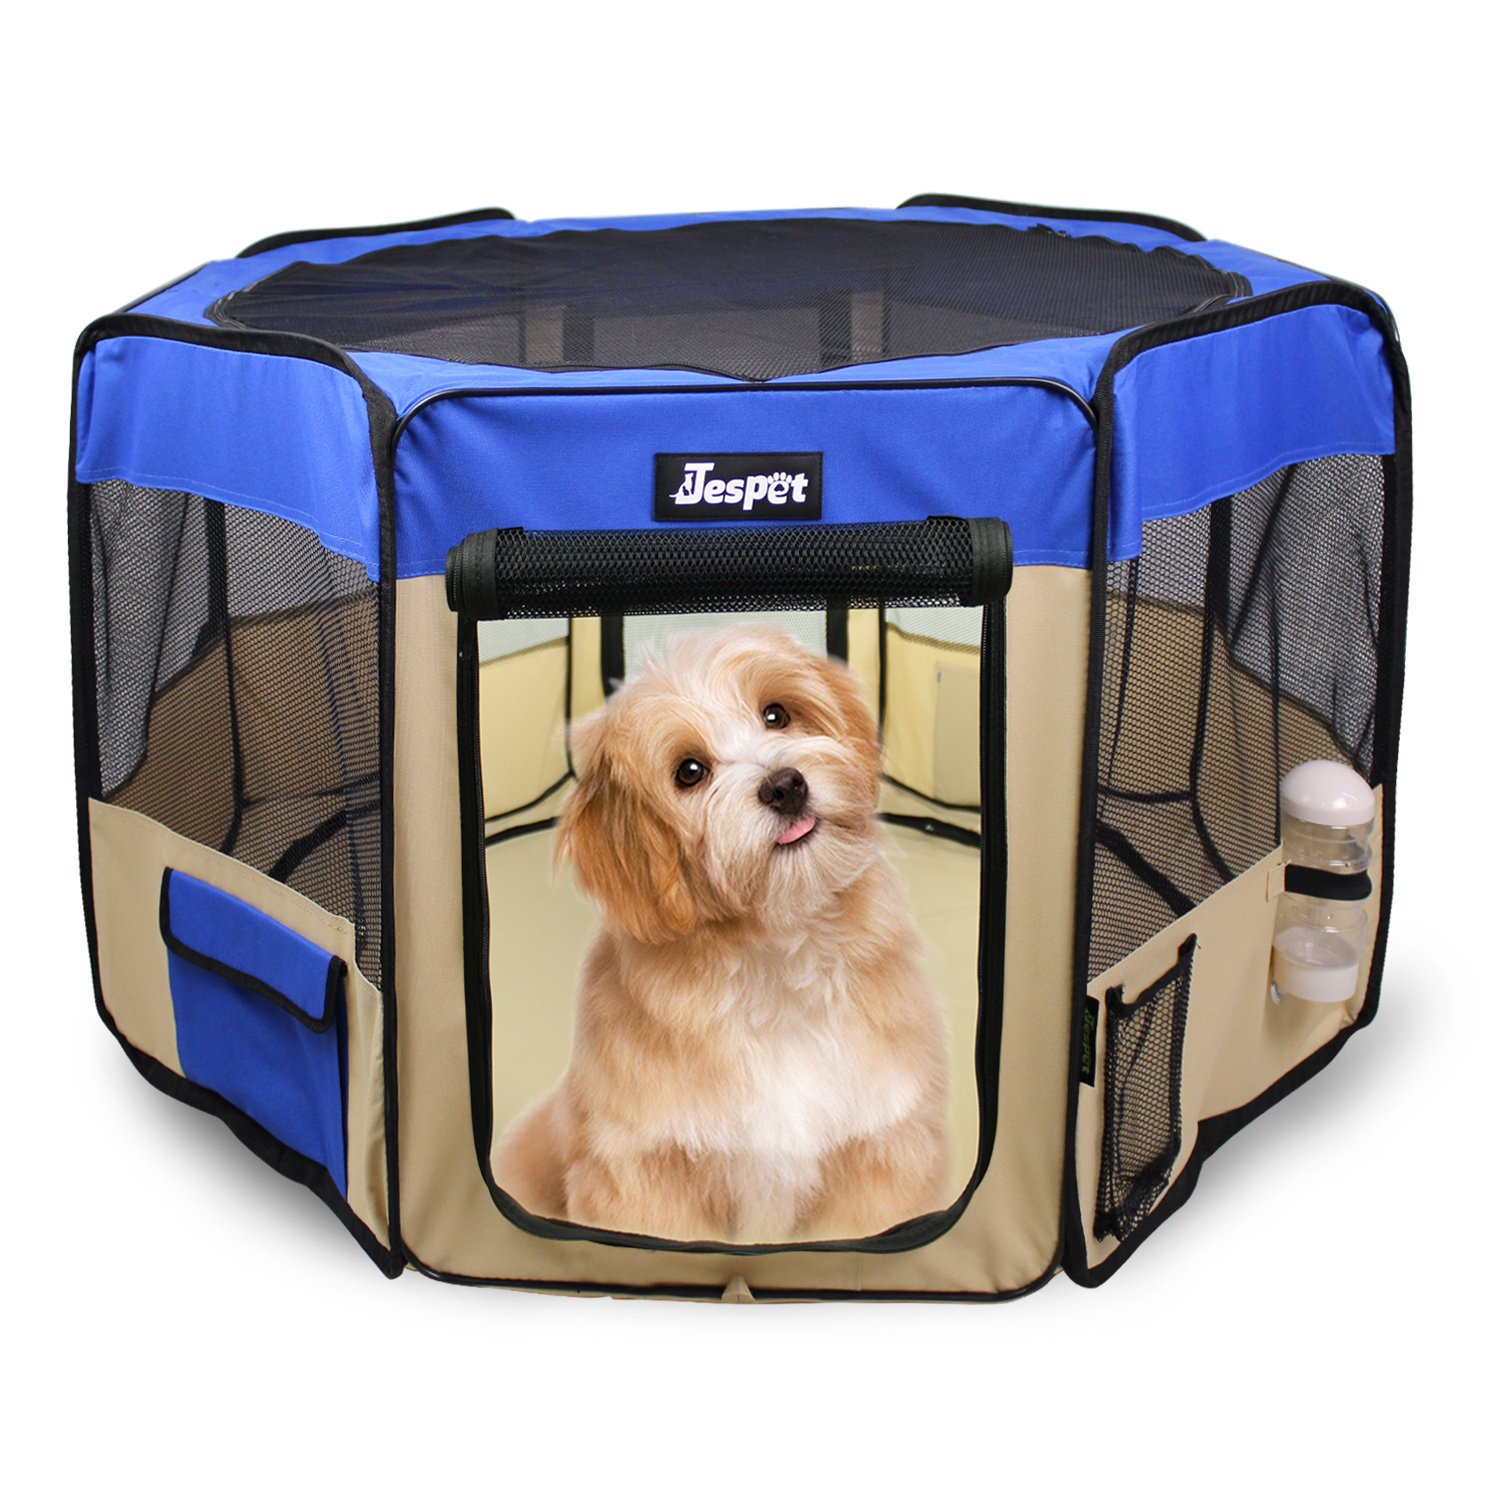 Jespet 61'' Pet Dog Playpens, Portable Soft Dog Exercise Pen Kennel with Carry Bag for Puppy Cats Kittens Rabbits,Blue